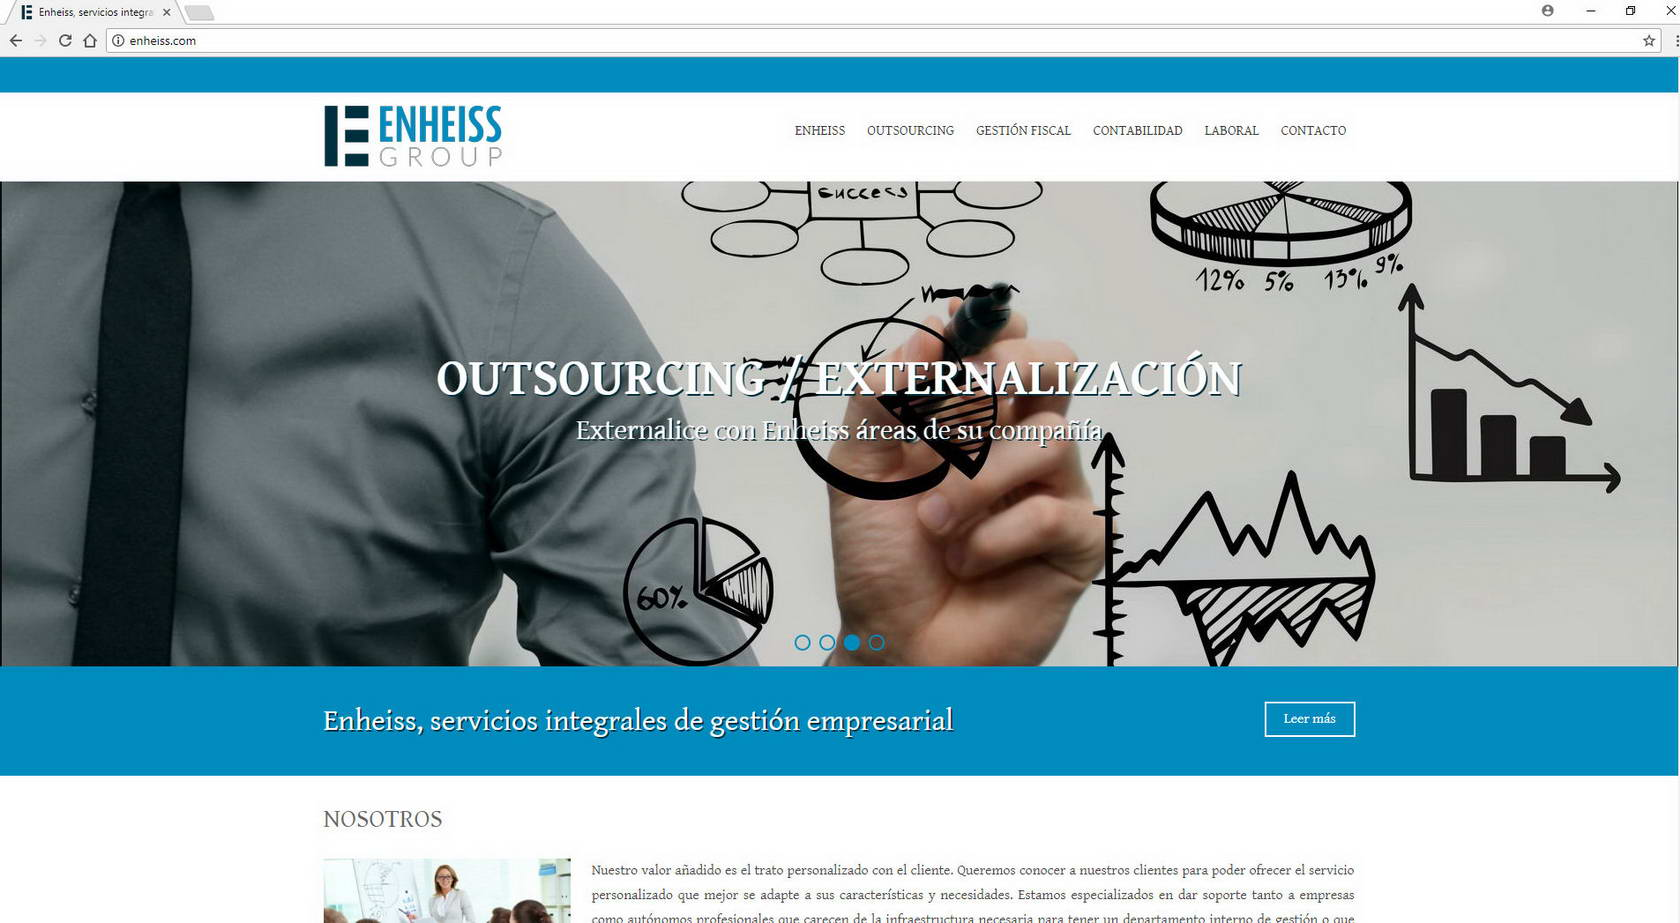 Enheiss Group